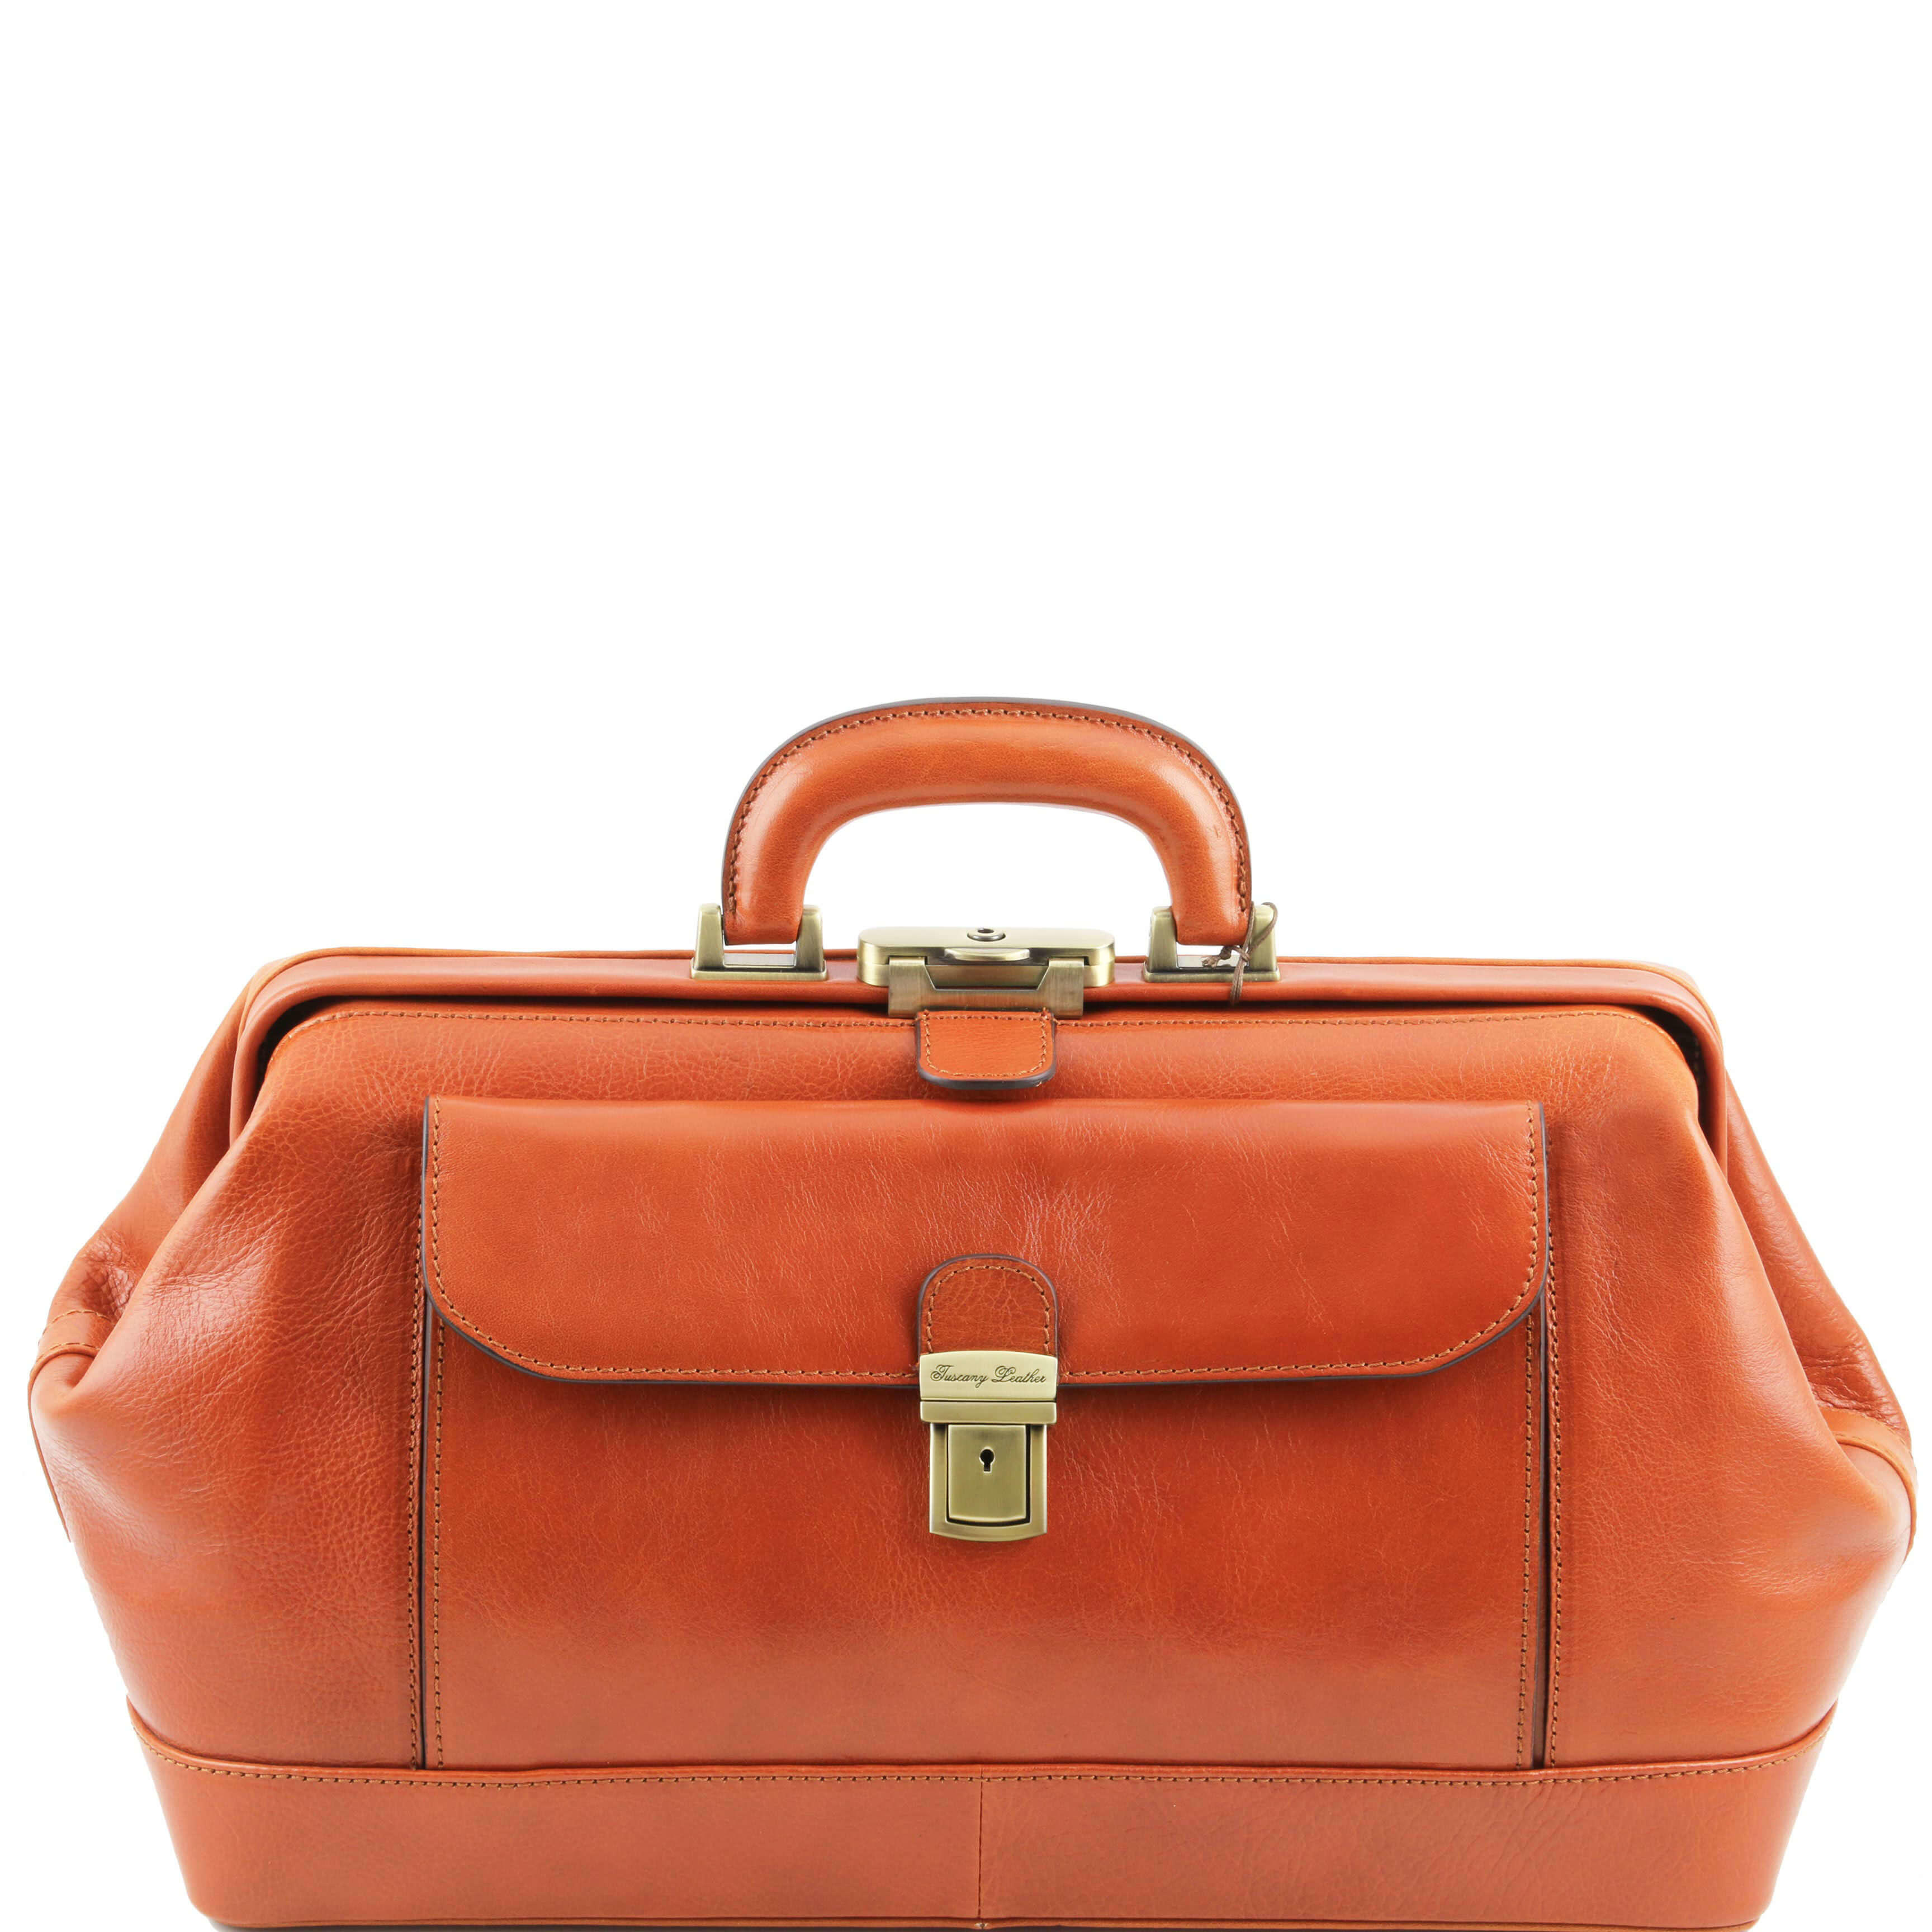 TL141298 Bernini Leather Doctors Bag - Holds iPad's etc - Honey